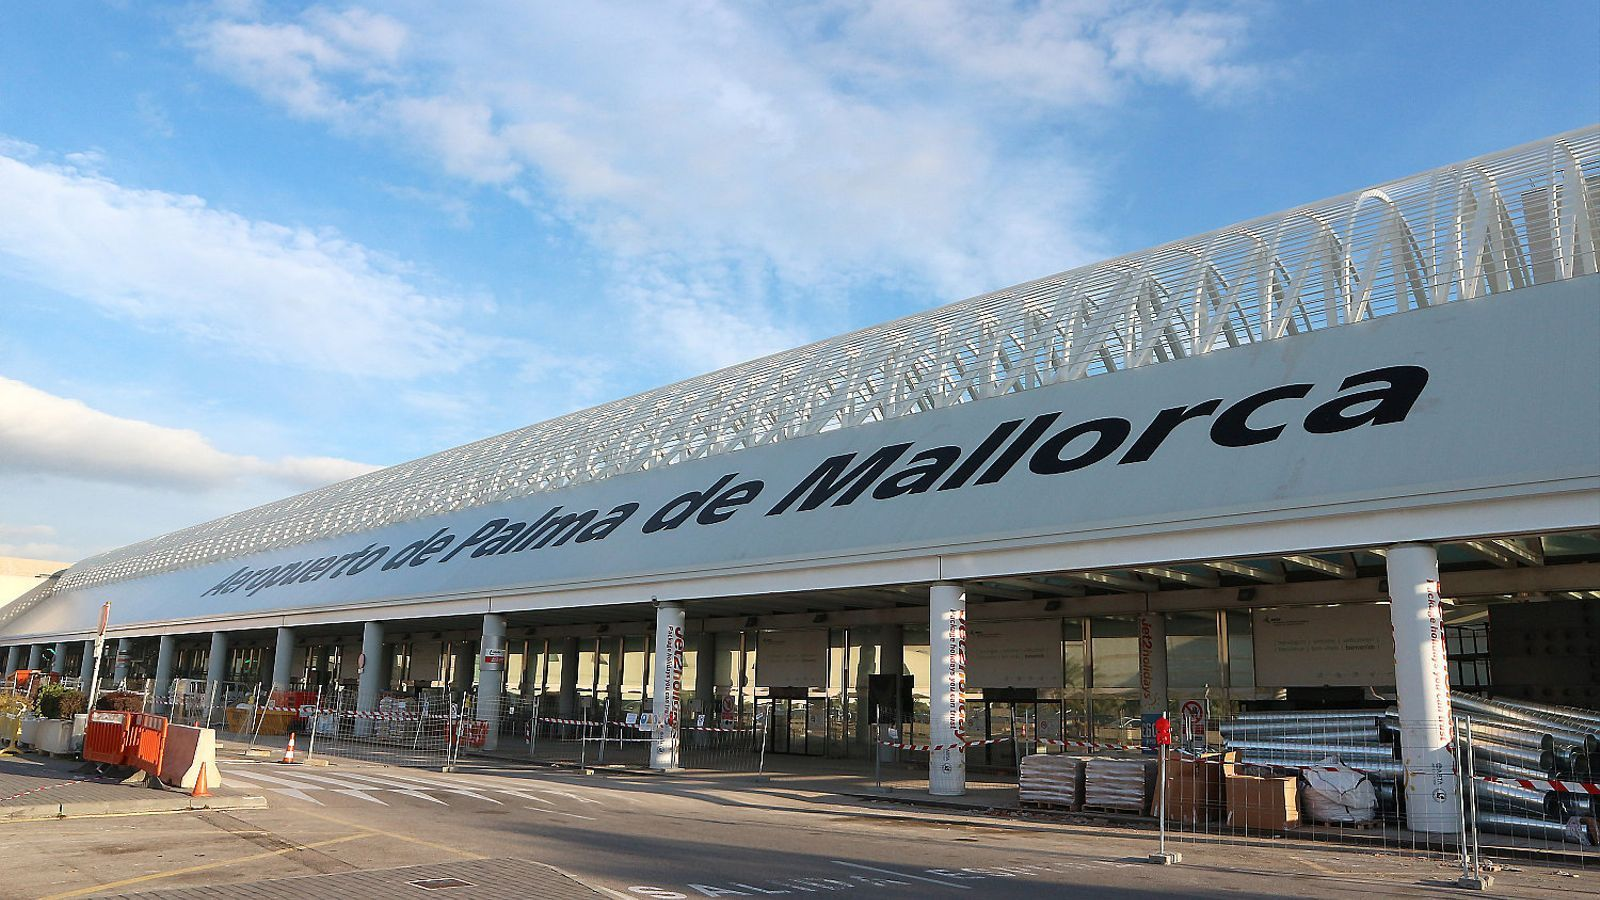 Aeroport Internacional Ramon Llull: el canvi que no arriba